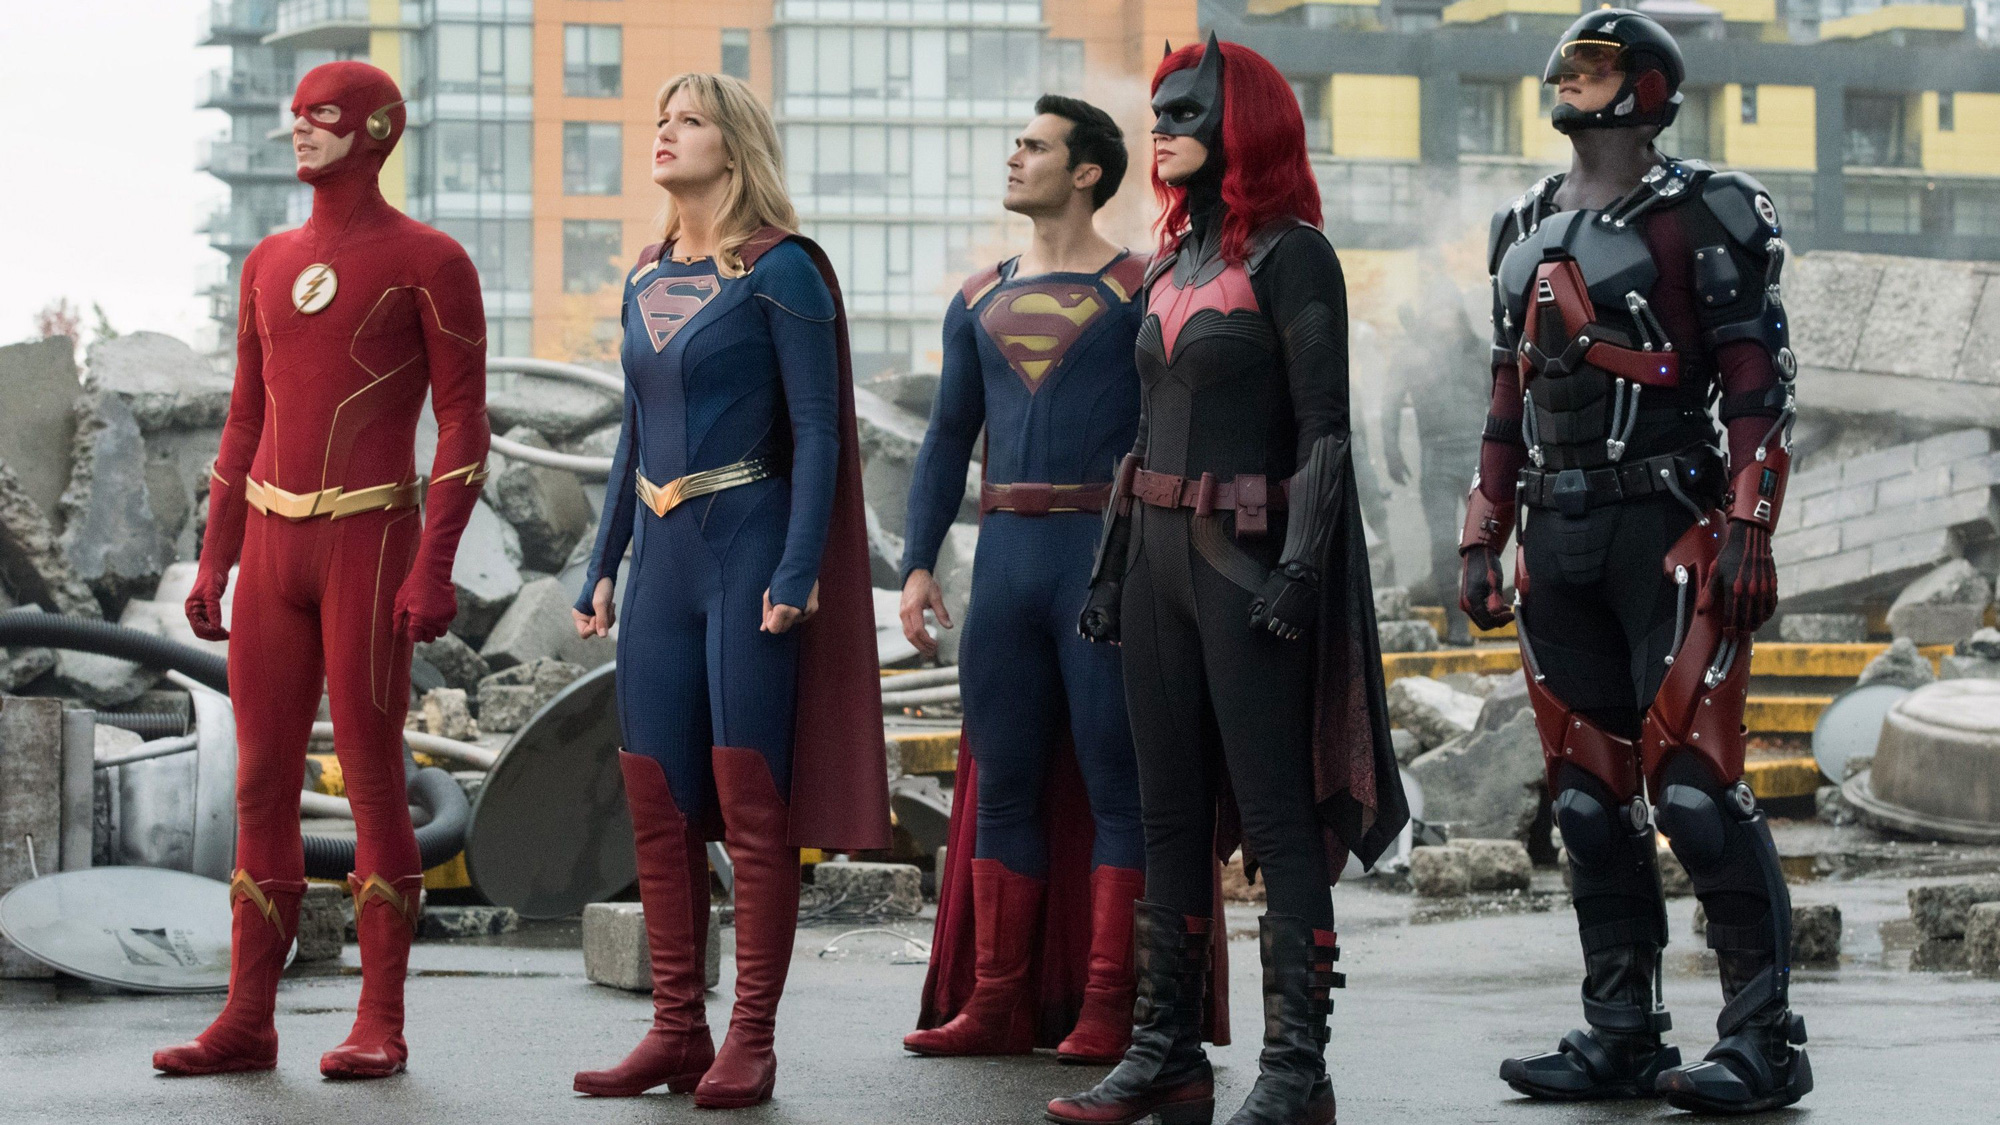 How to watch Crisis on Infinite Earths: order and online streaming details